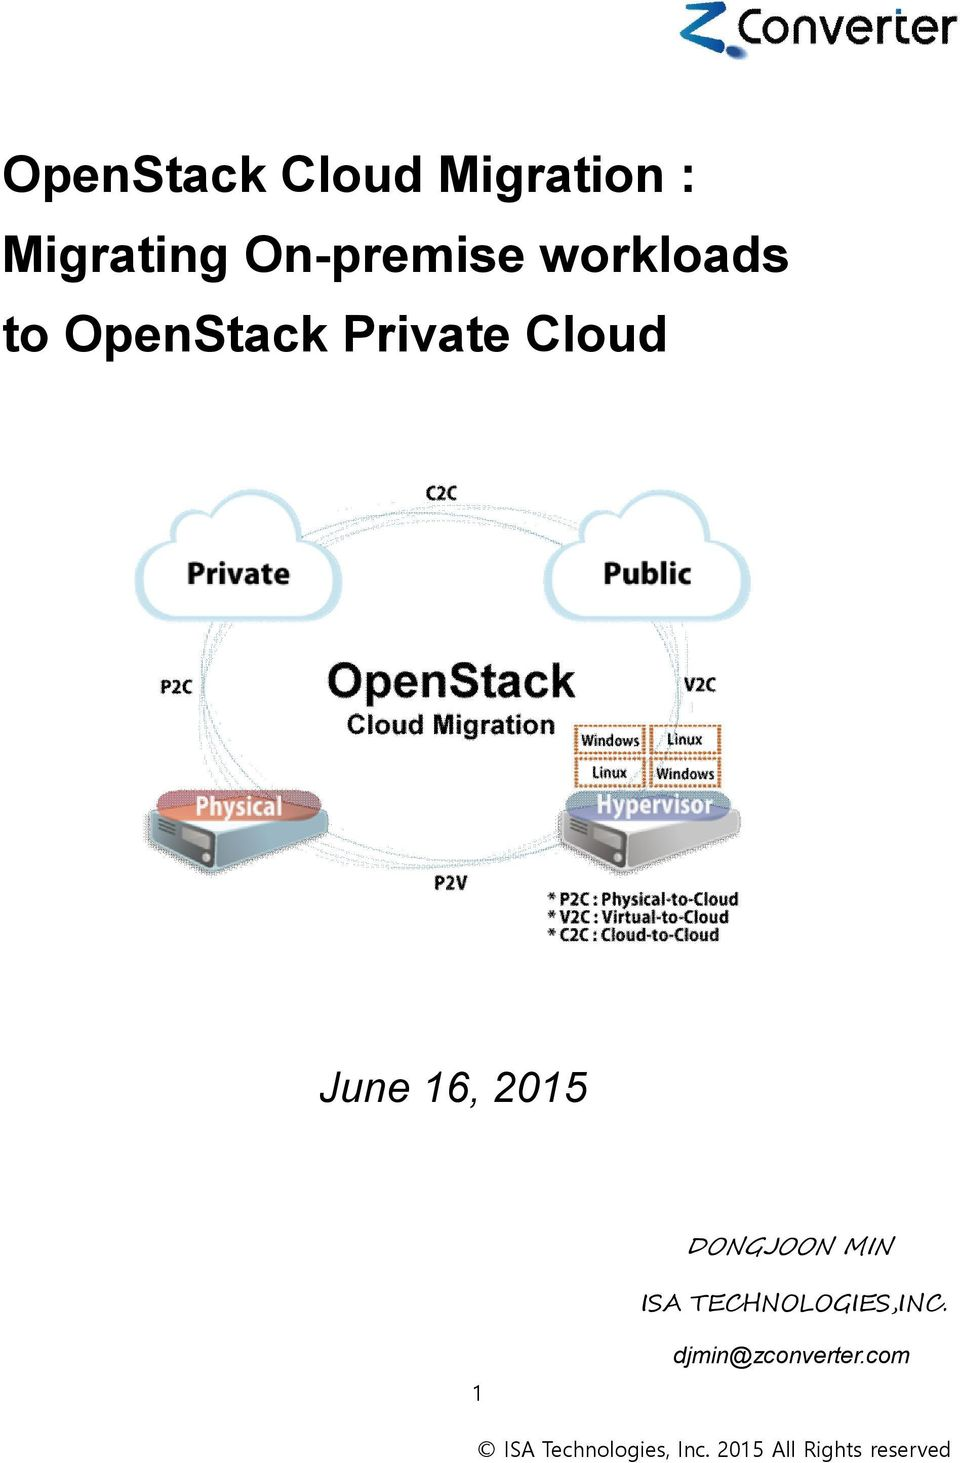 OpenStack Cloud Migration : Migrating On-premise workloads